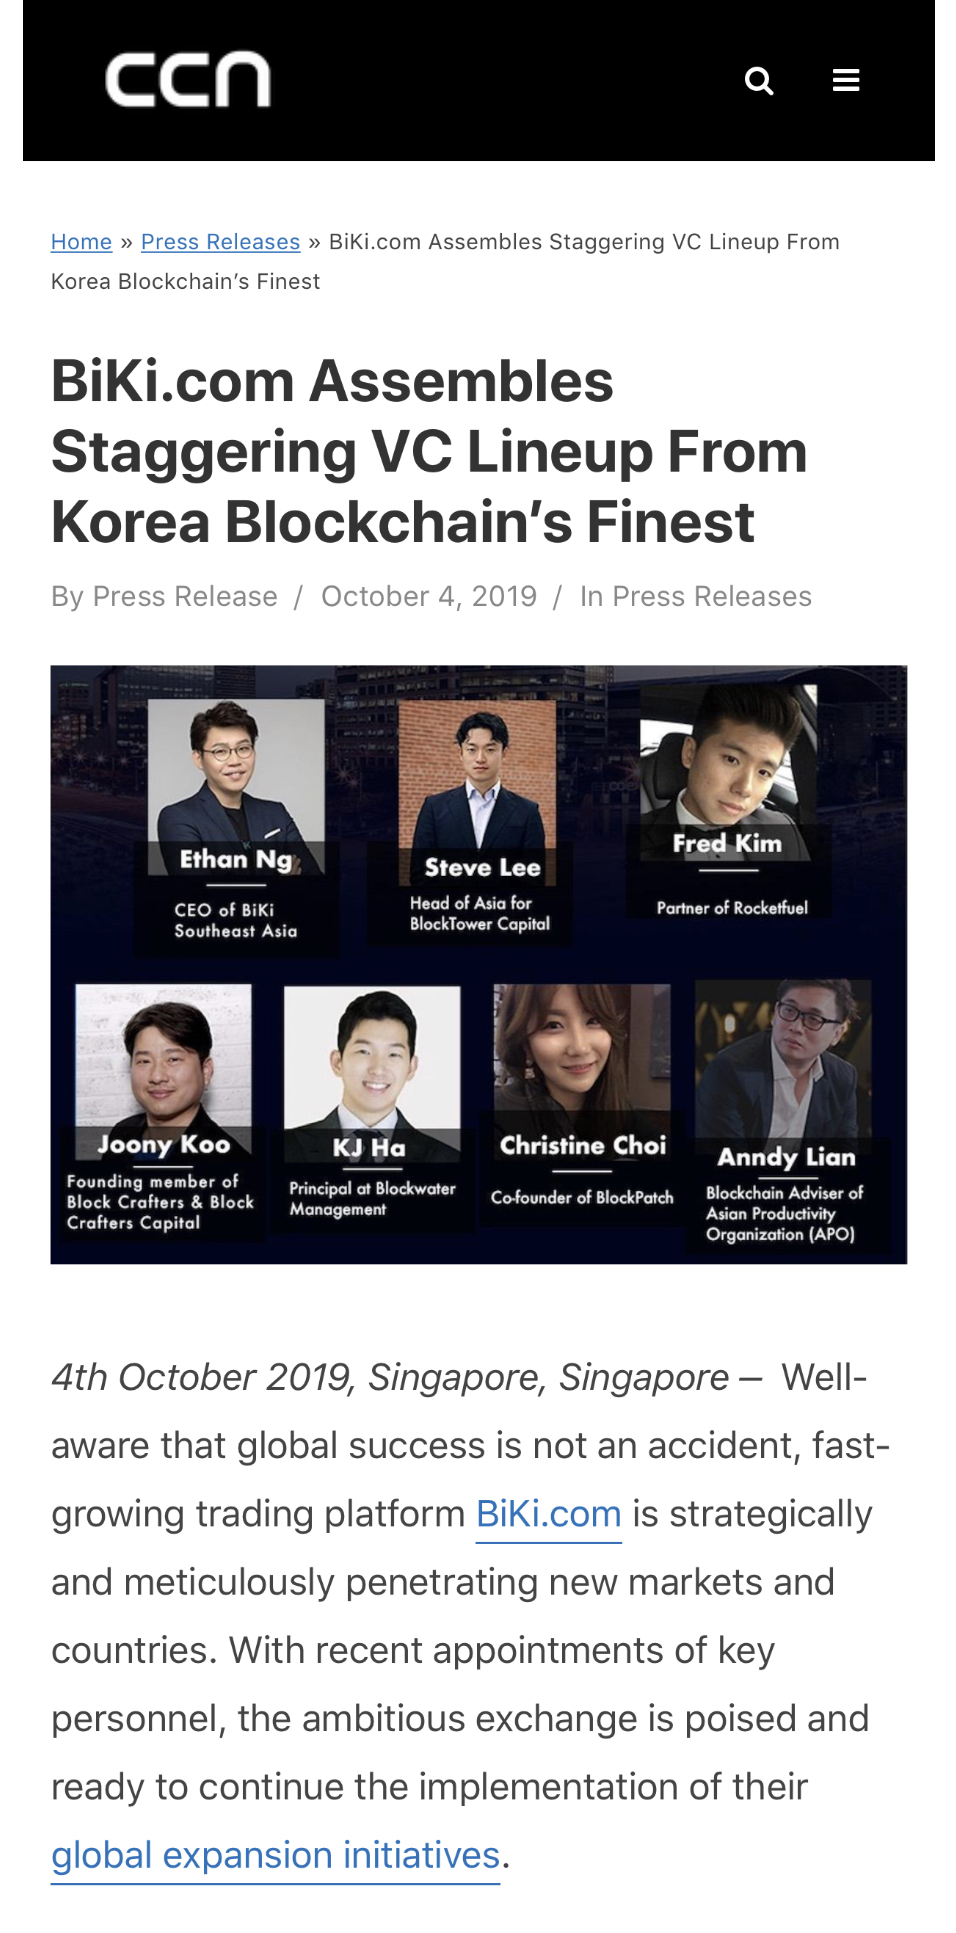 , CCN: BiKi.com Assembles Staggering VC Lineup From Korea Blockchain's Finest, Blockchain Adviser for Inter-Governmental Organisation | Book Author | Investor | Board Member